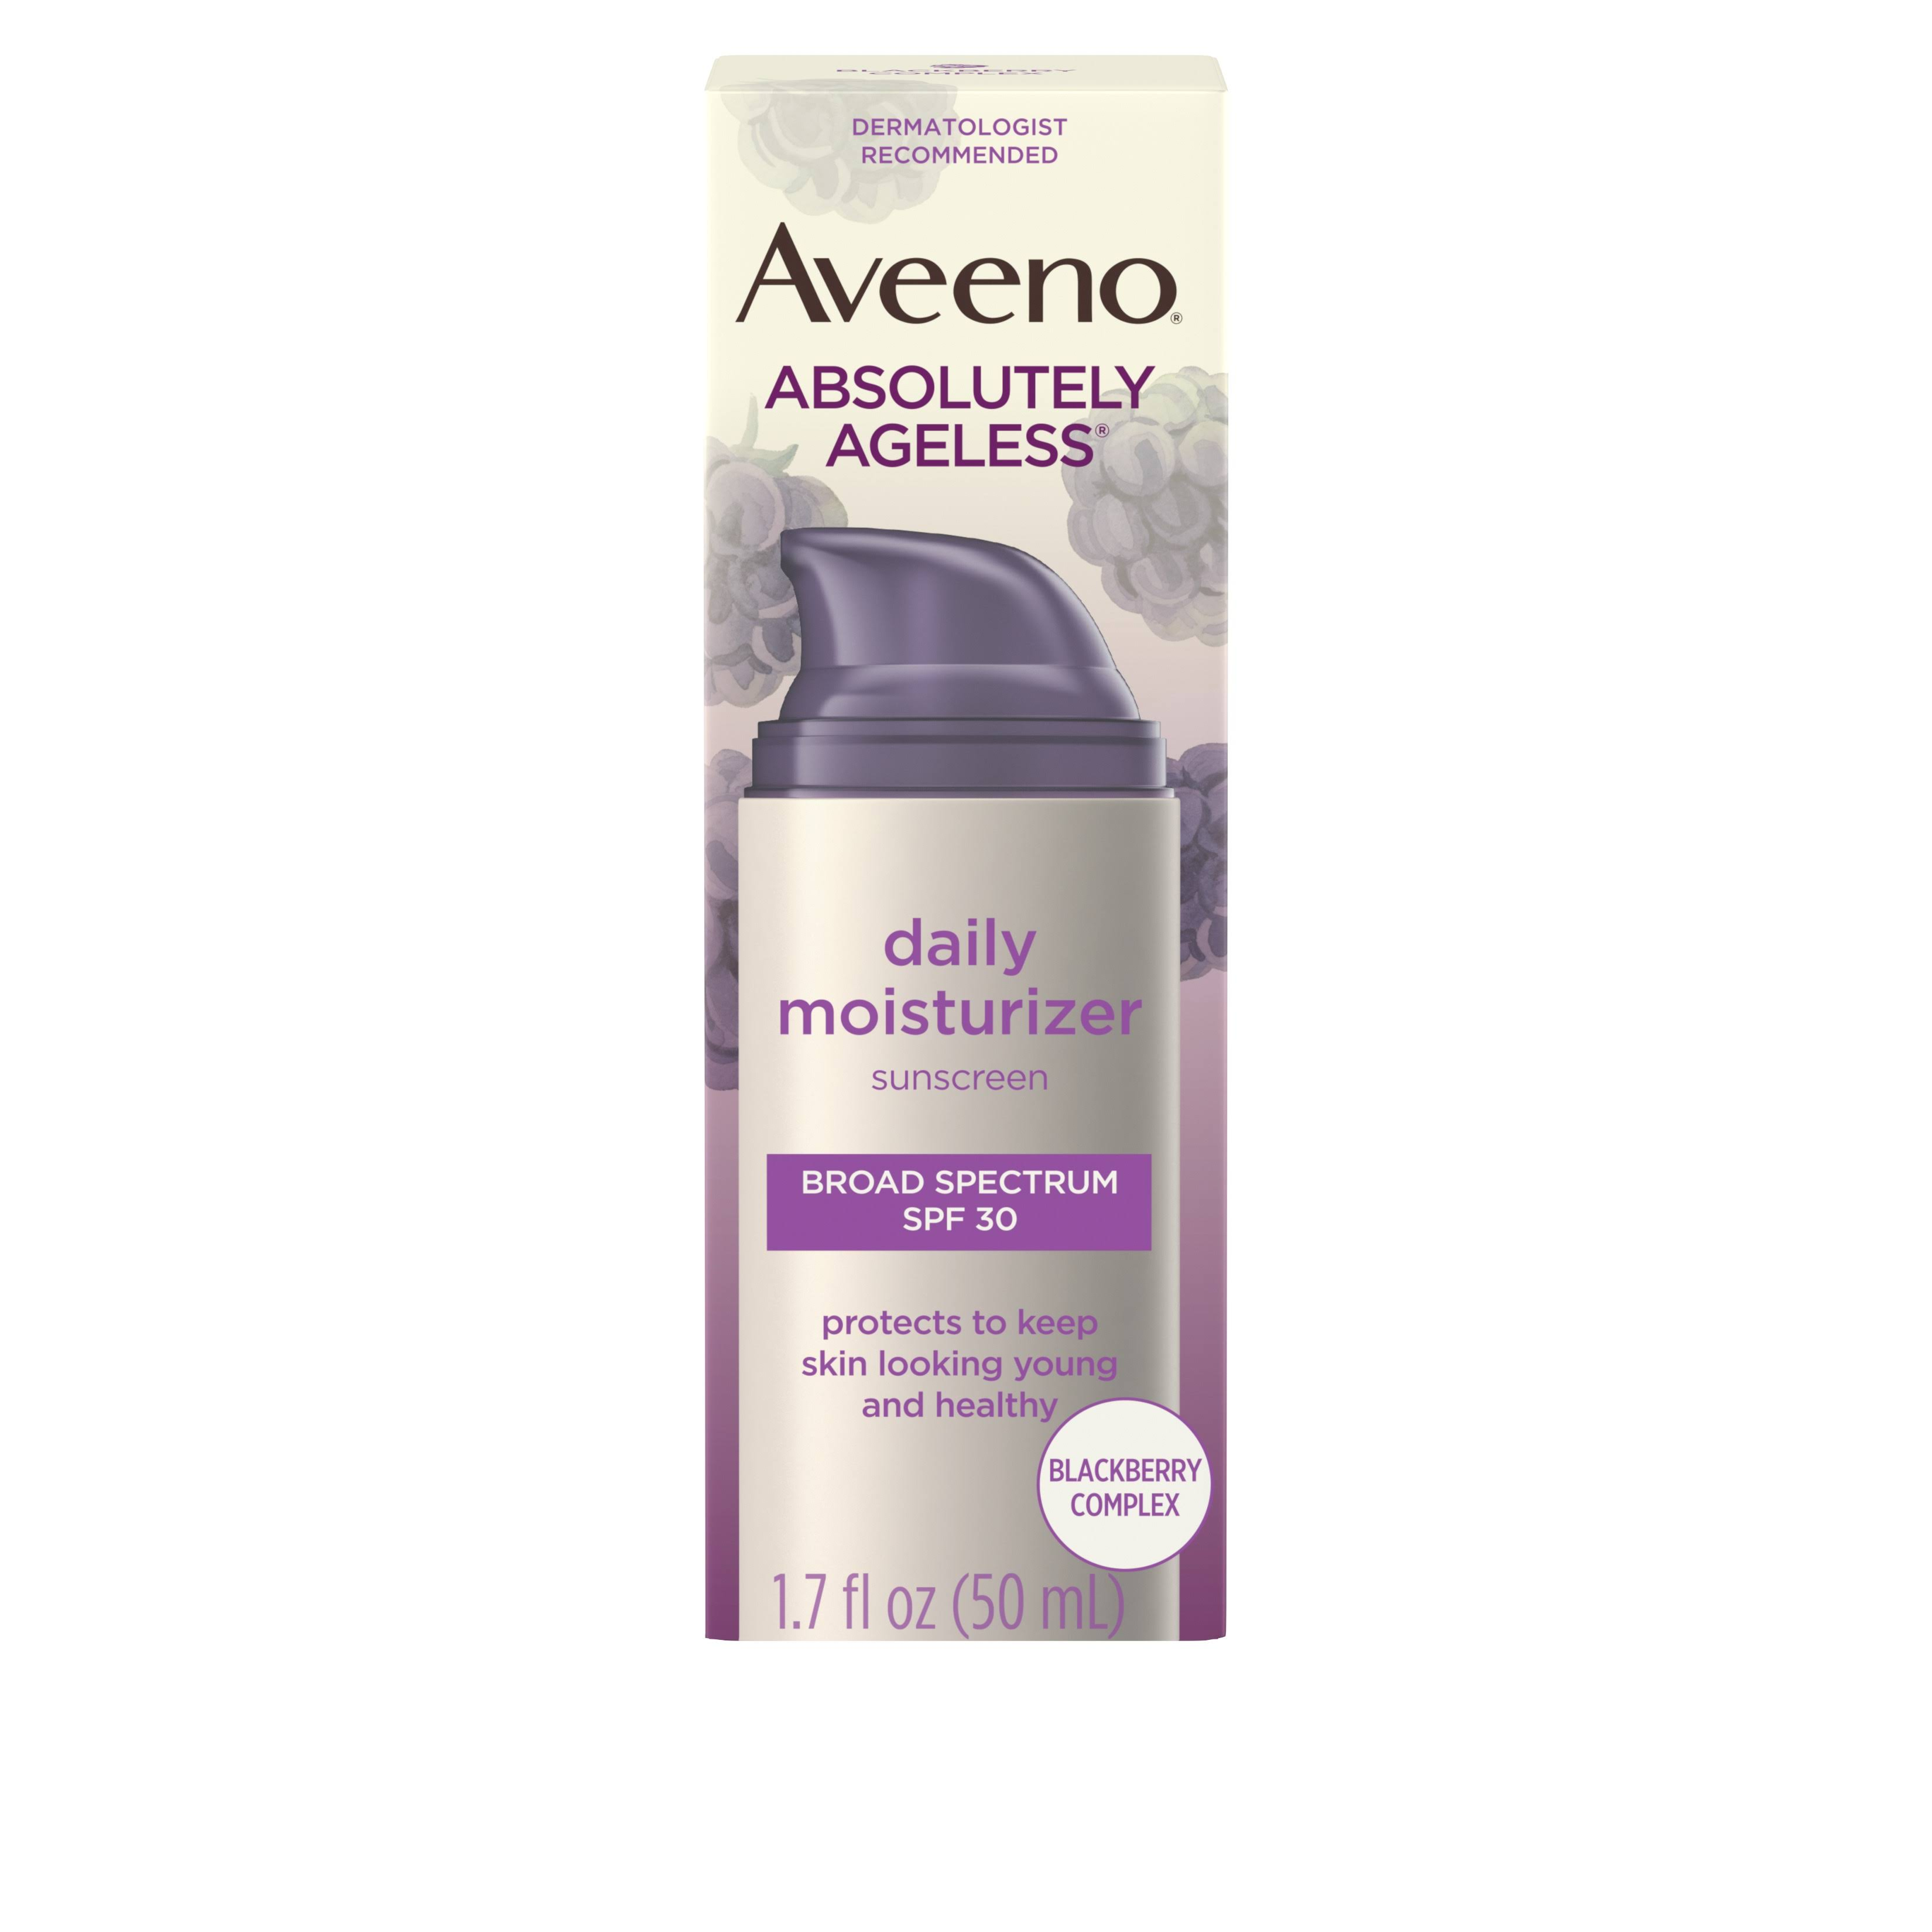 Aveeno Absolutely Ageless Daily Moisturizer - SPF 30, 1.7oz